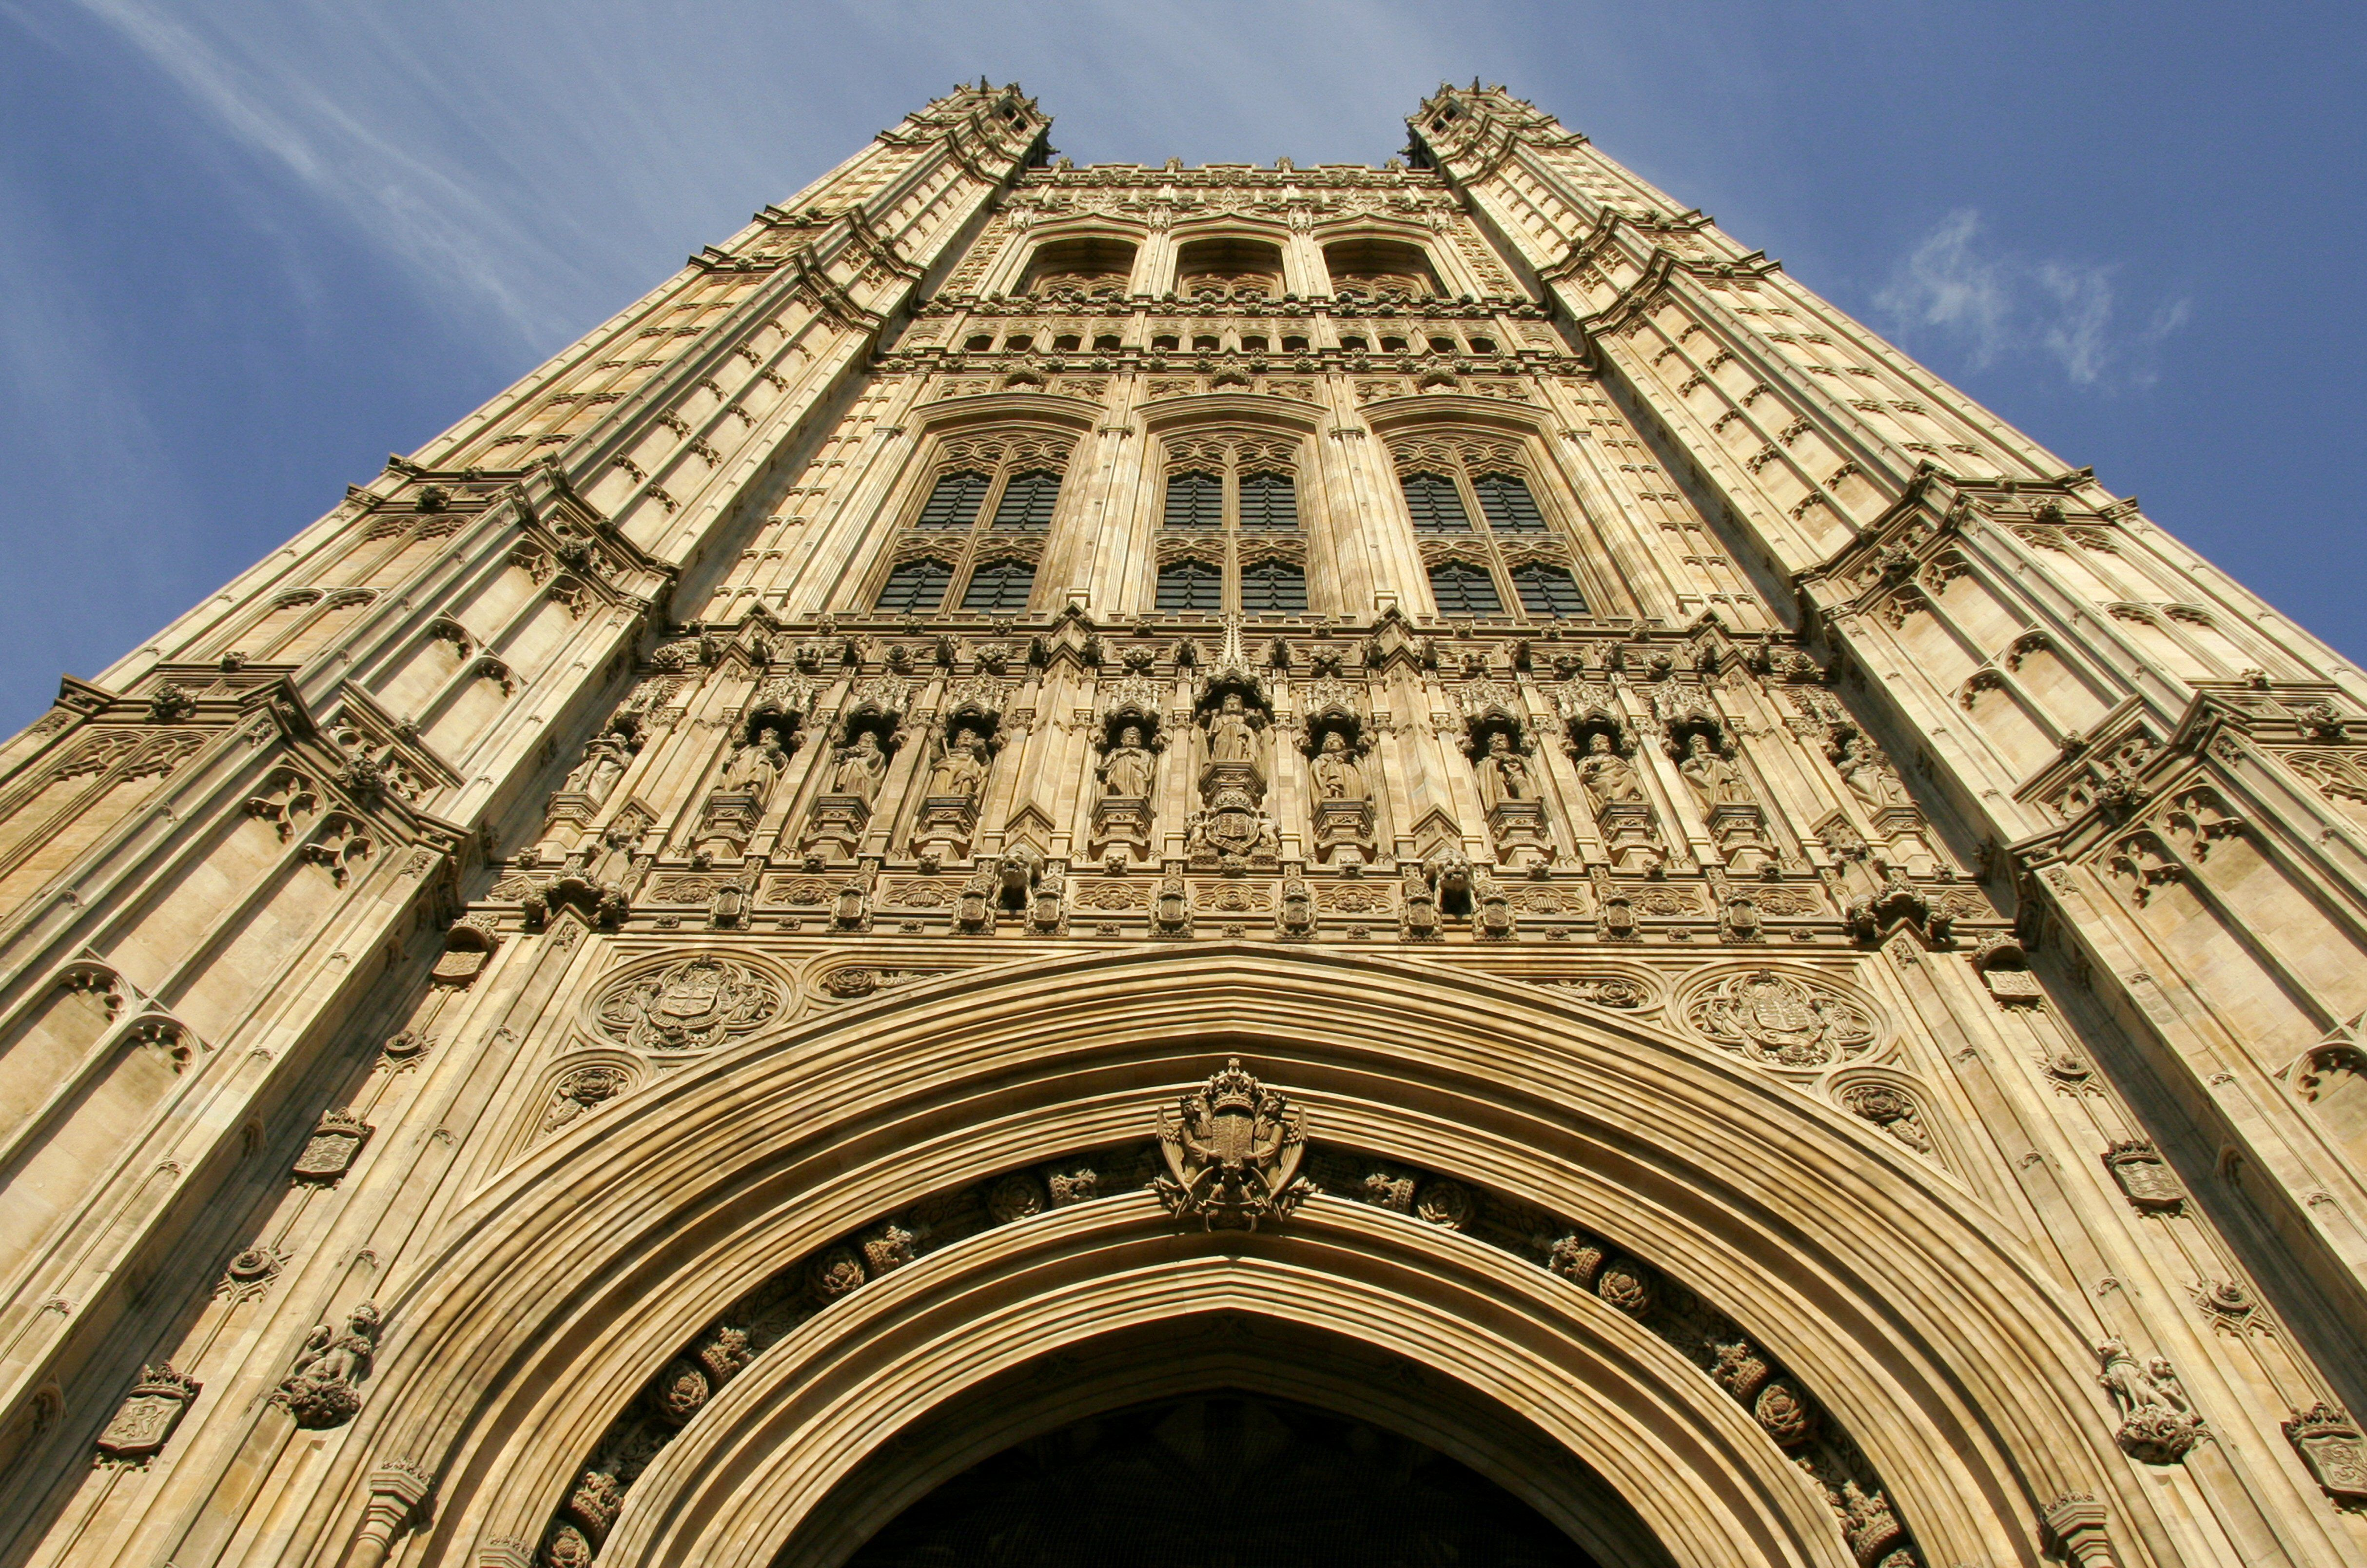 Looking up the High Victorian Gothic Victoria Tower (1860) in London, The Houses of Parliament